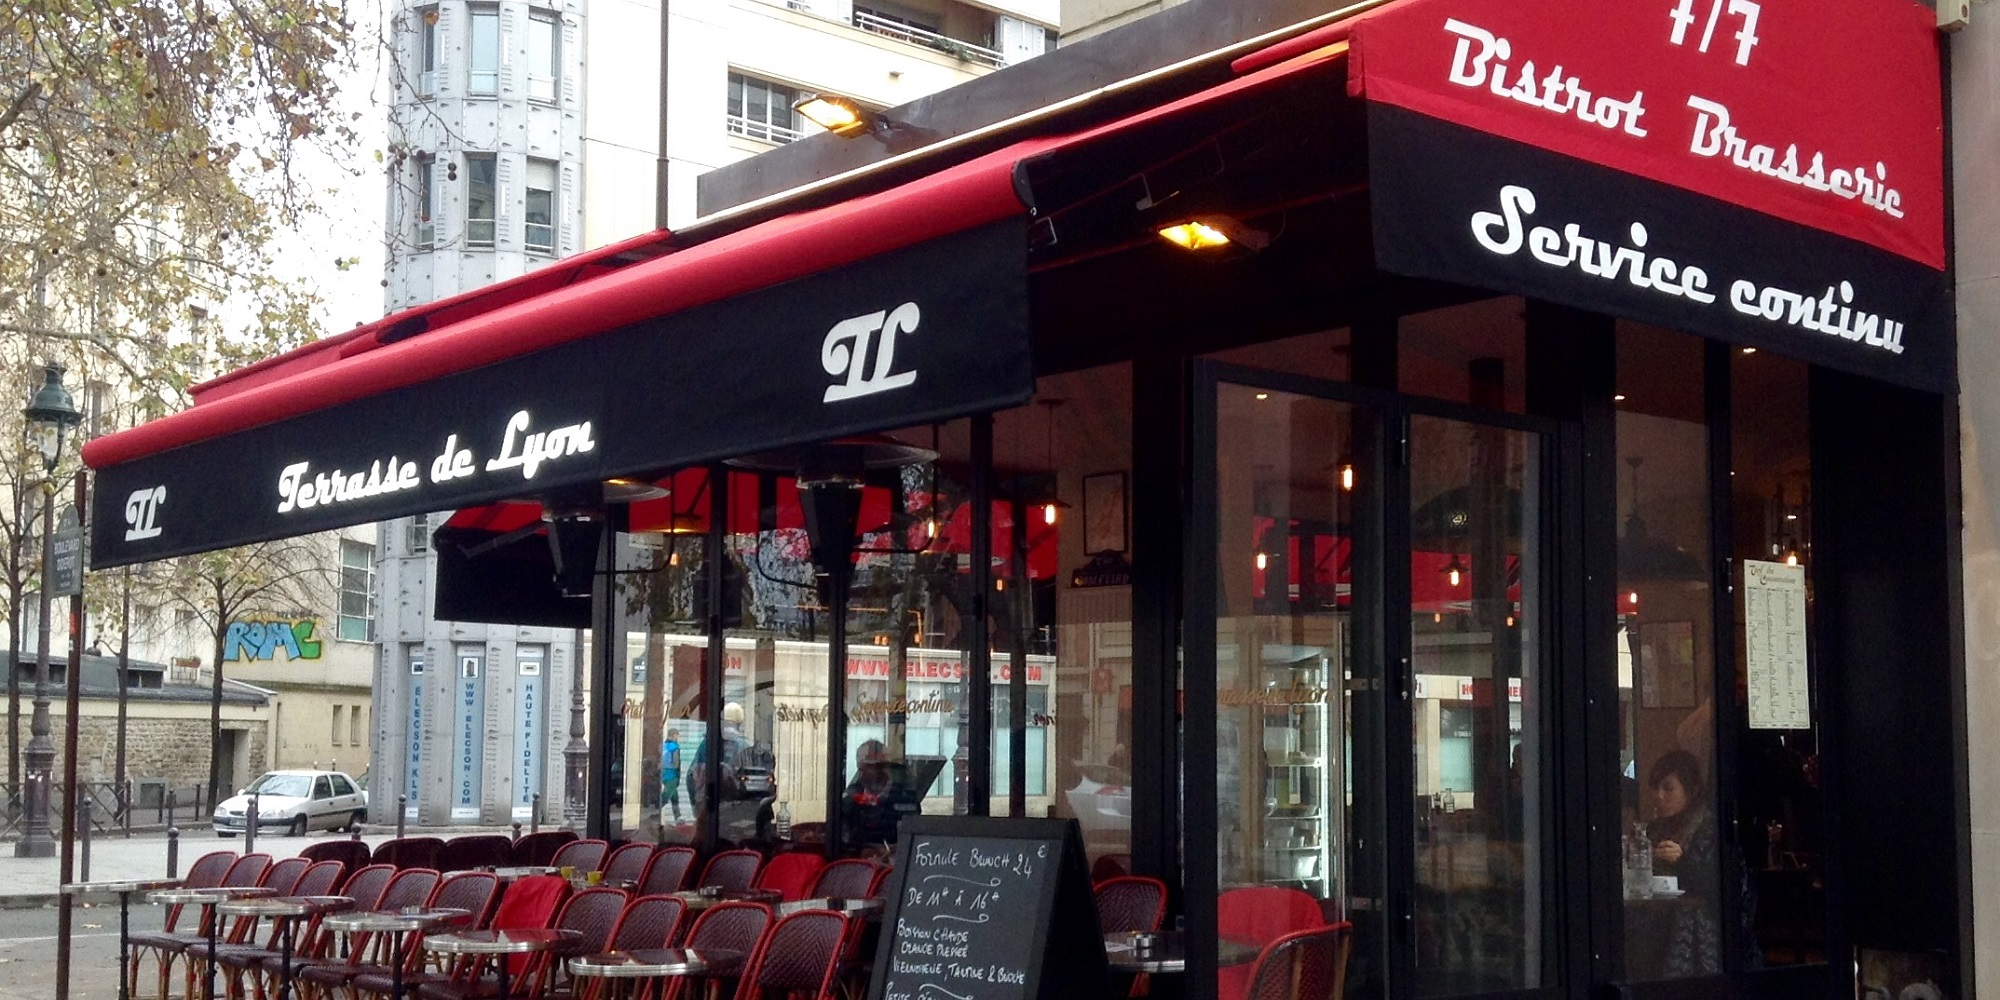 Brunch La terrasse de Lyon (75012 Paris)